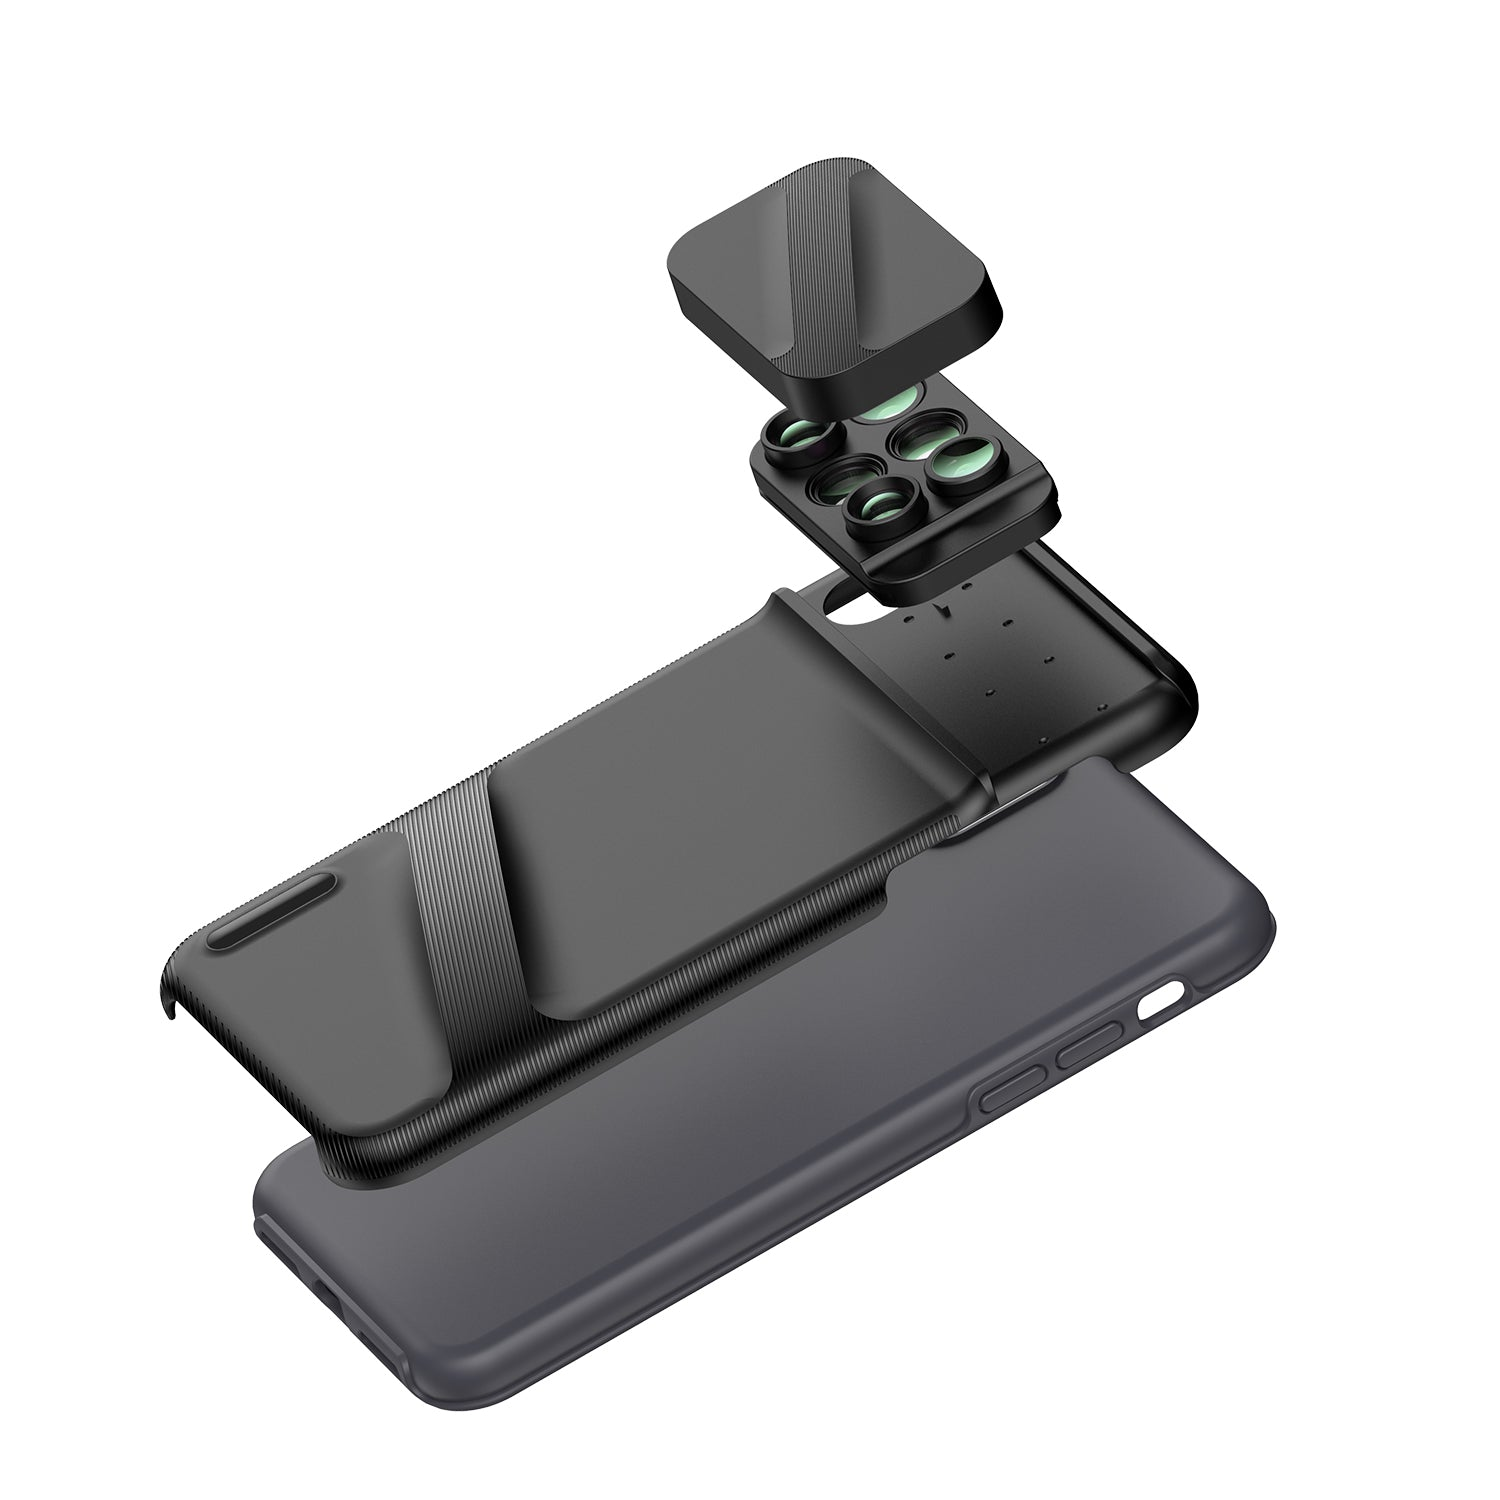 Switch 6 MK II for iPhone XS Max